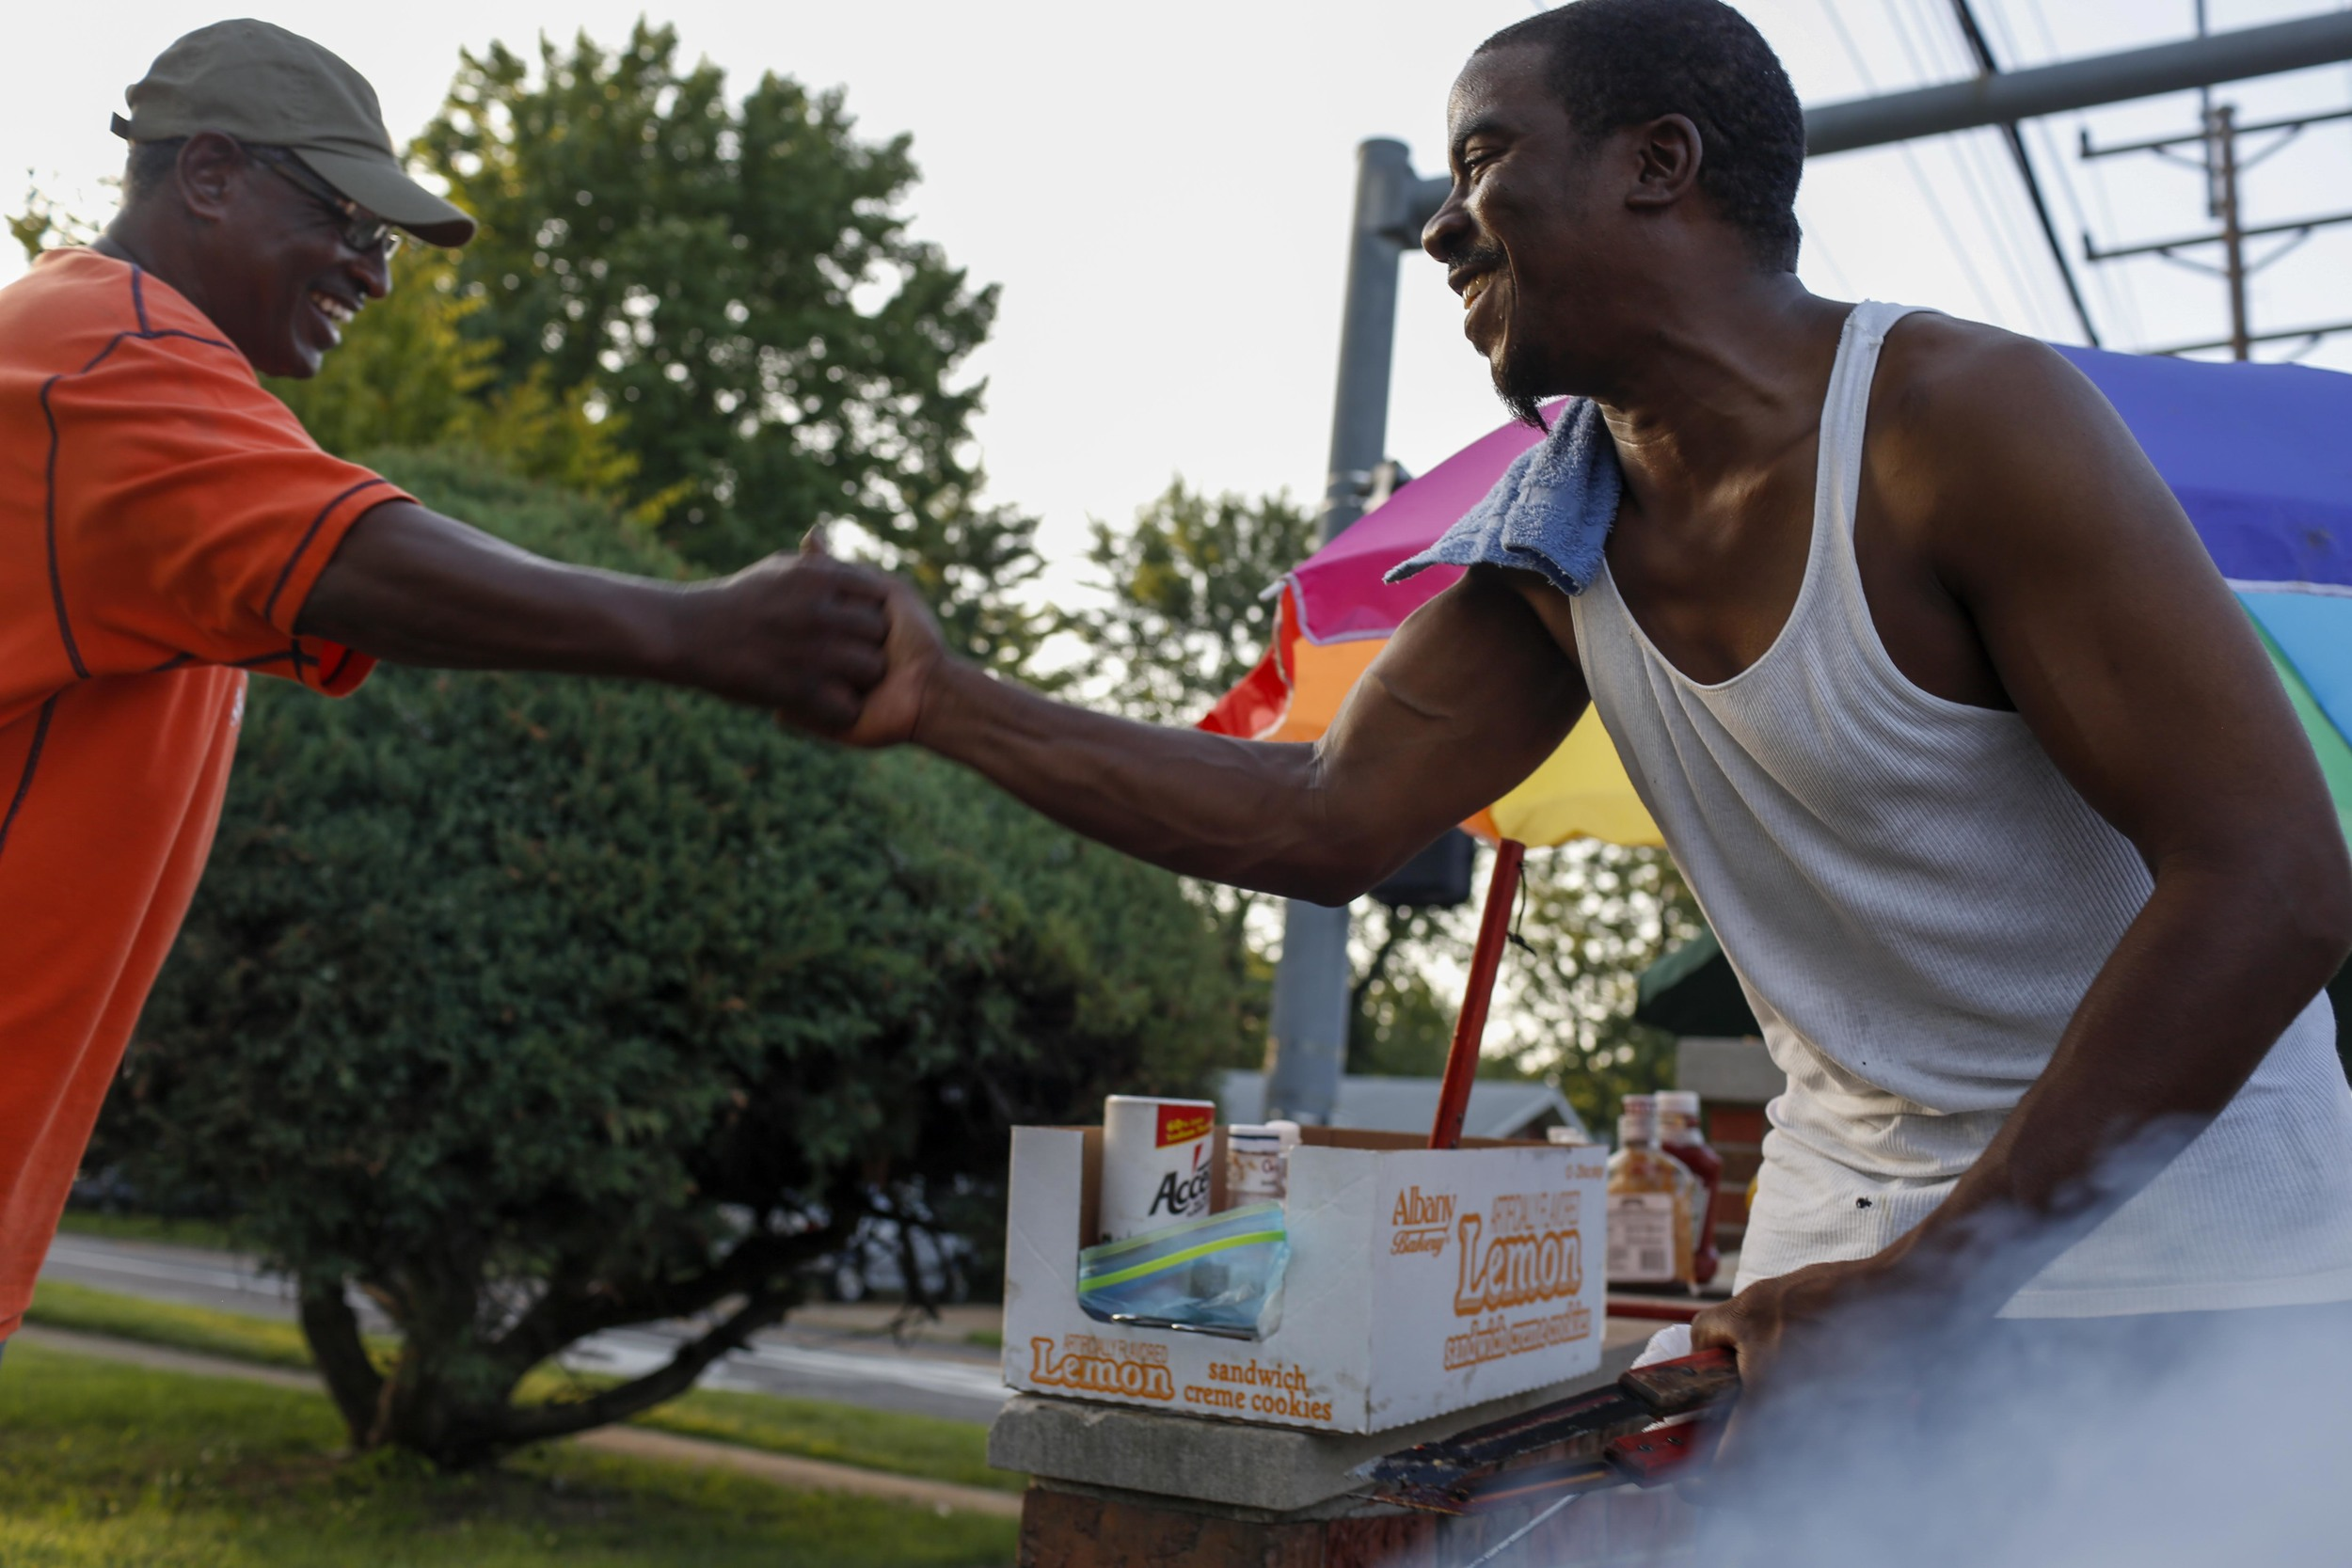 Greg Jones, left, greets Walter Nash as Nash cooks free BBQ on W. Florissant for protestors August 20, 2014 in Ferguson, MO less than a mile away from where Michael Brown was shot and killed by a Ferguson police officer.